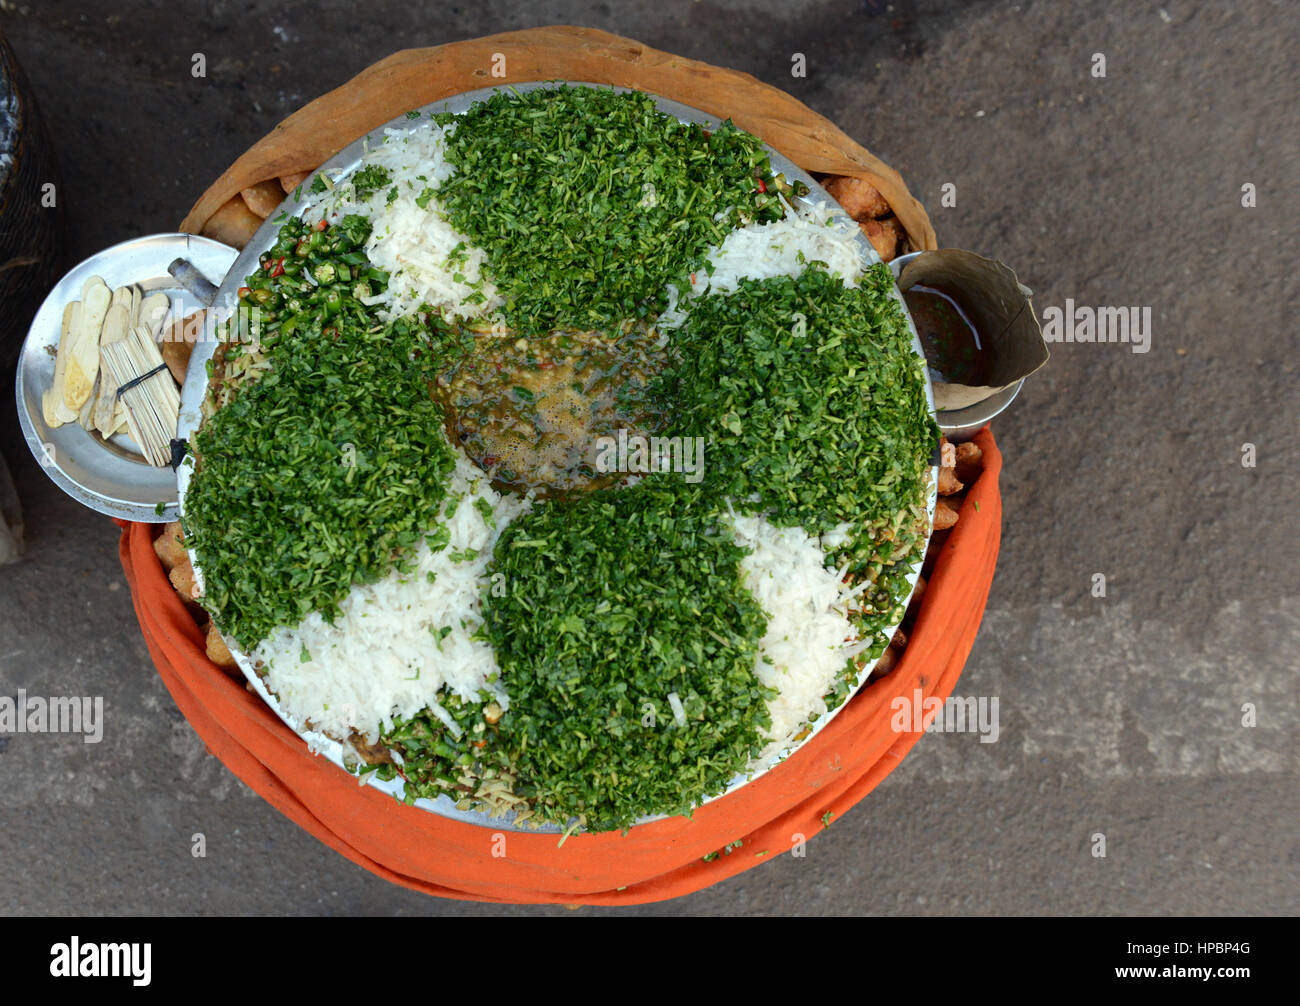 A street food vendor in Lucknow, India serving boiled chickpeas with onion and green garnish. - Stock Image